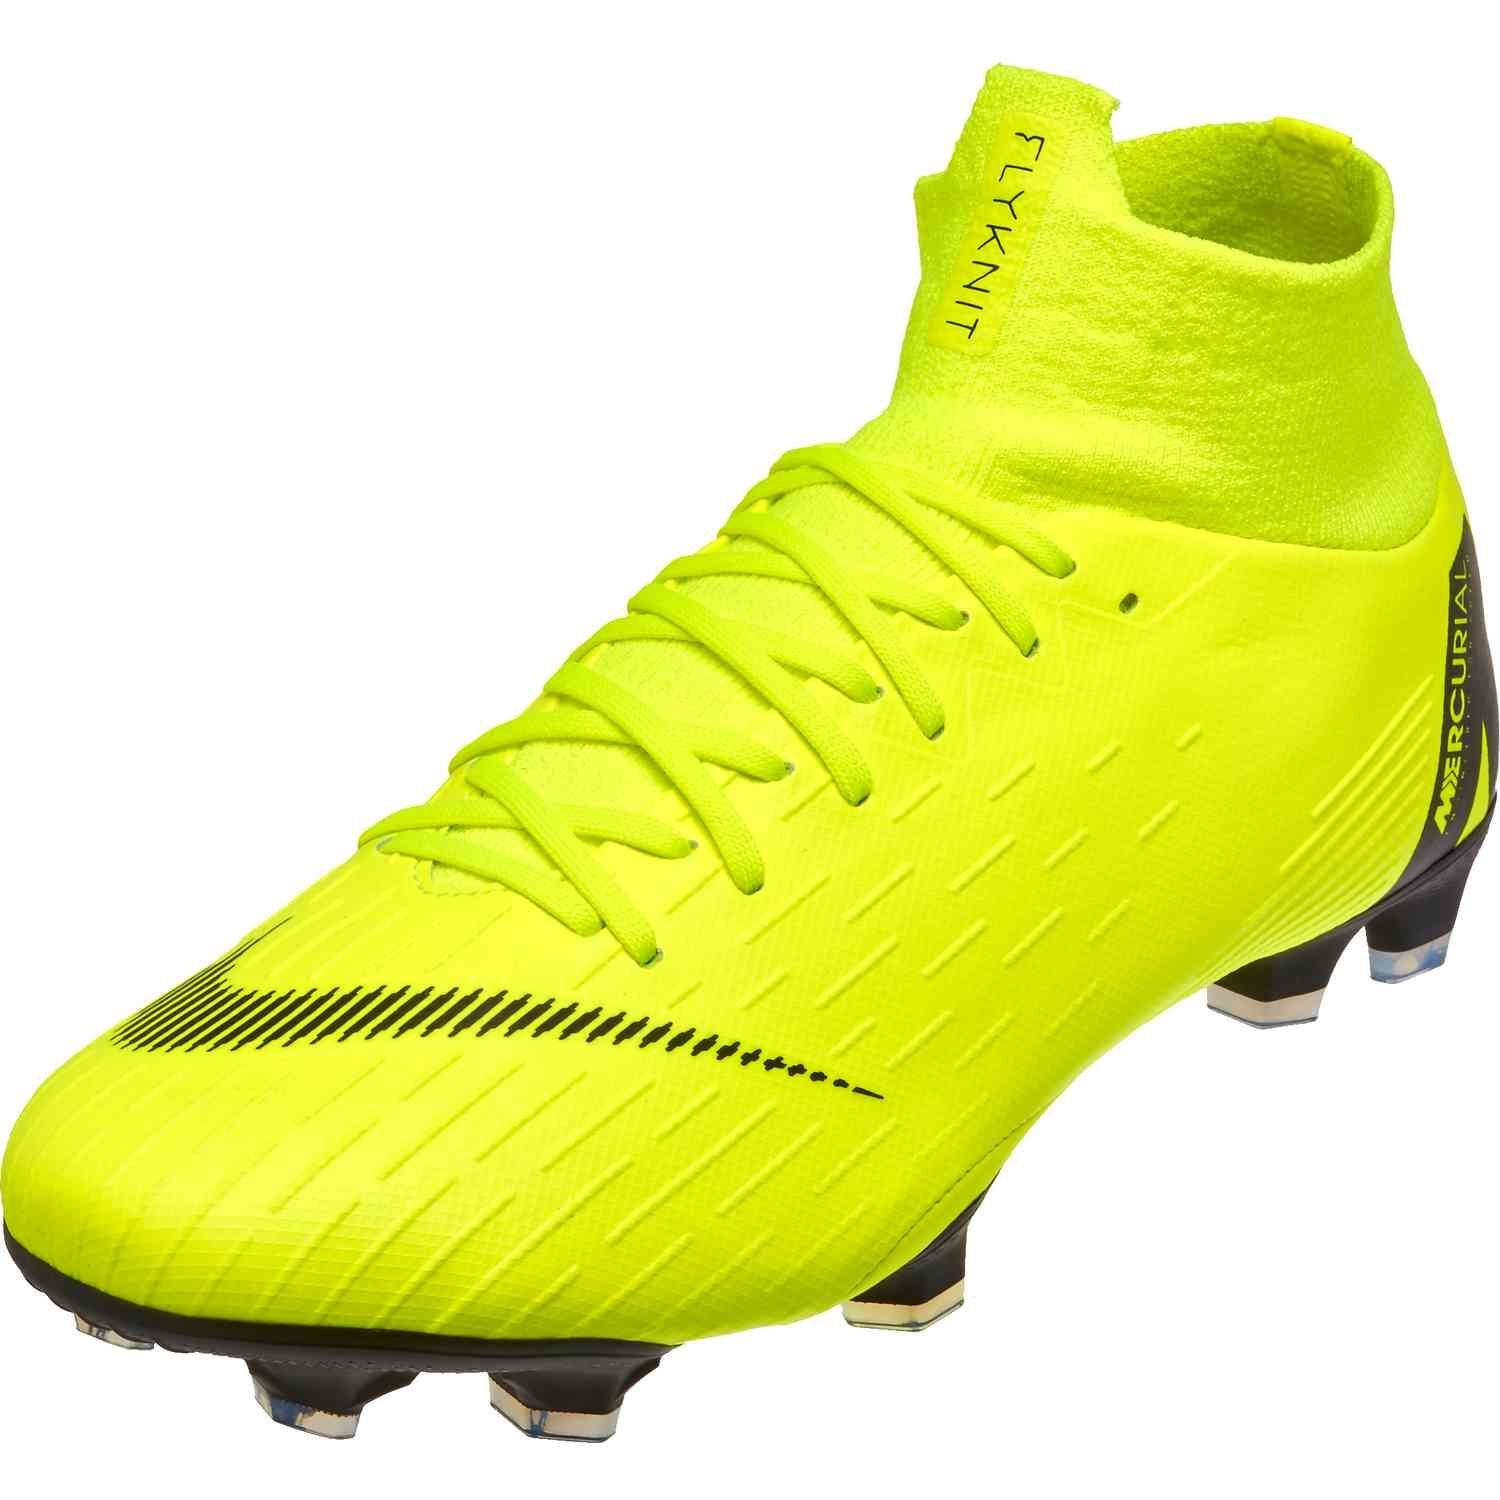 63d783f1d Buy the Always Forward pack Nike Mercurial Superfly 6 Pro fg soccer cleats  from www.soccerpro.com